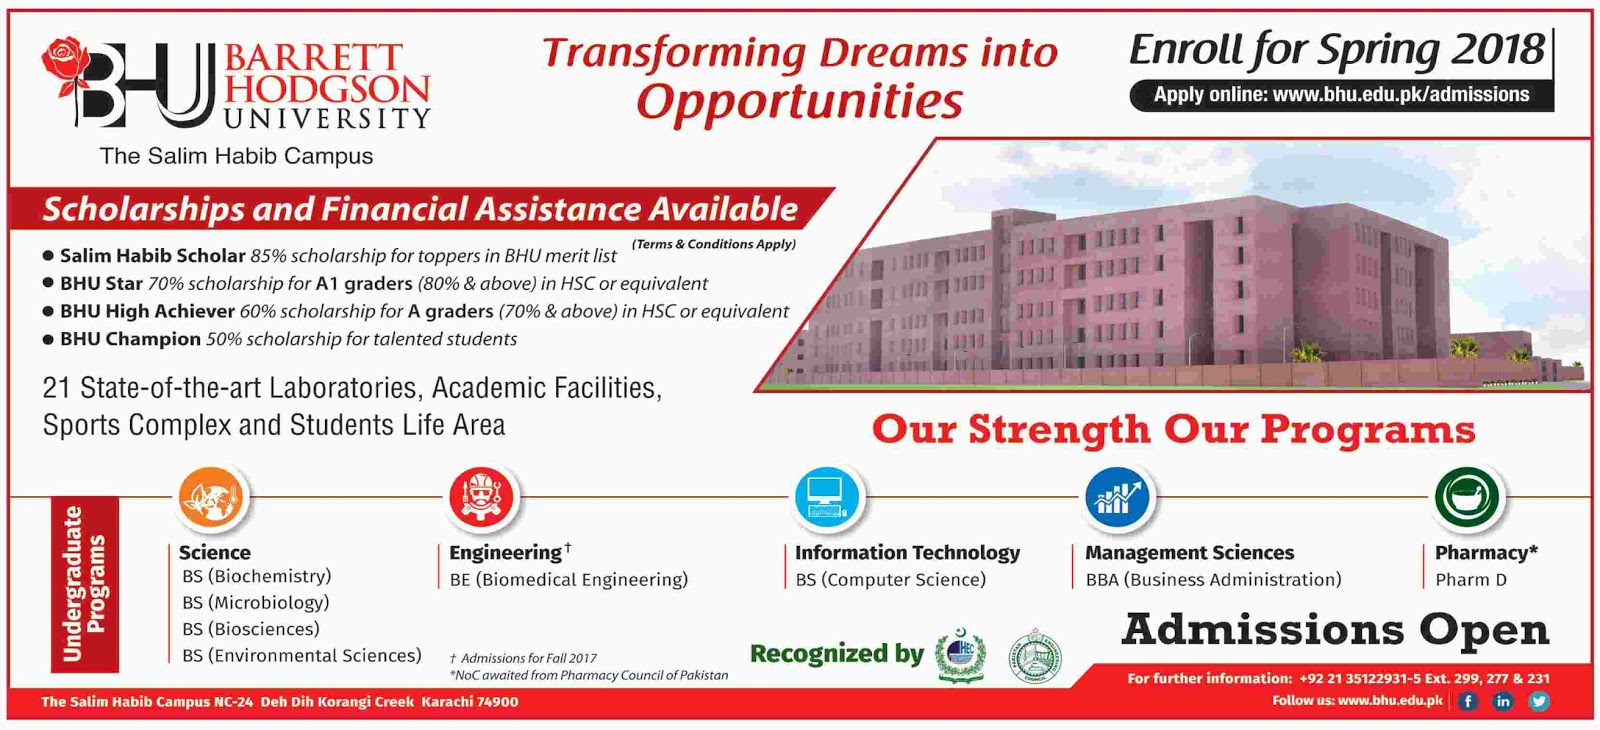 Admissions Open in Barrett Hodgson University Karachi